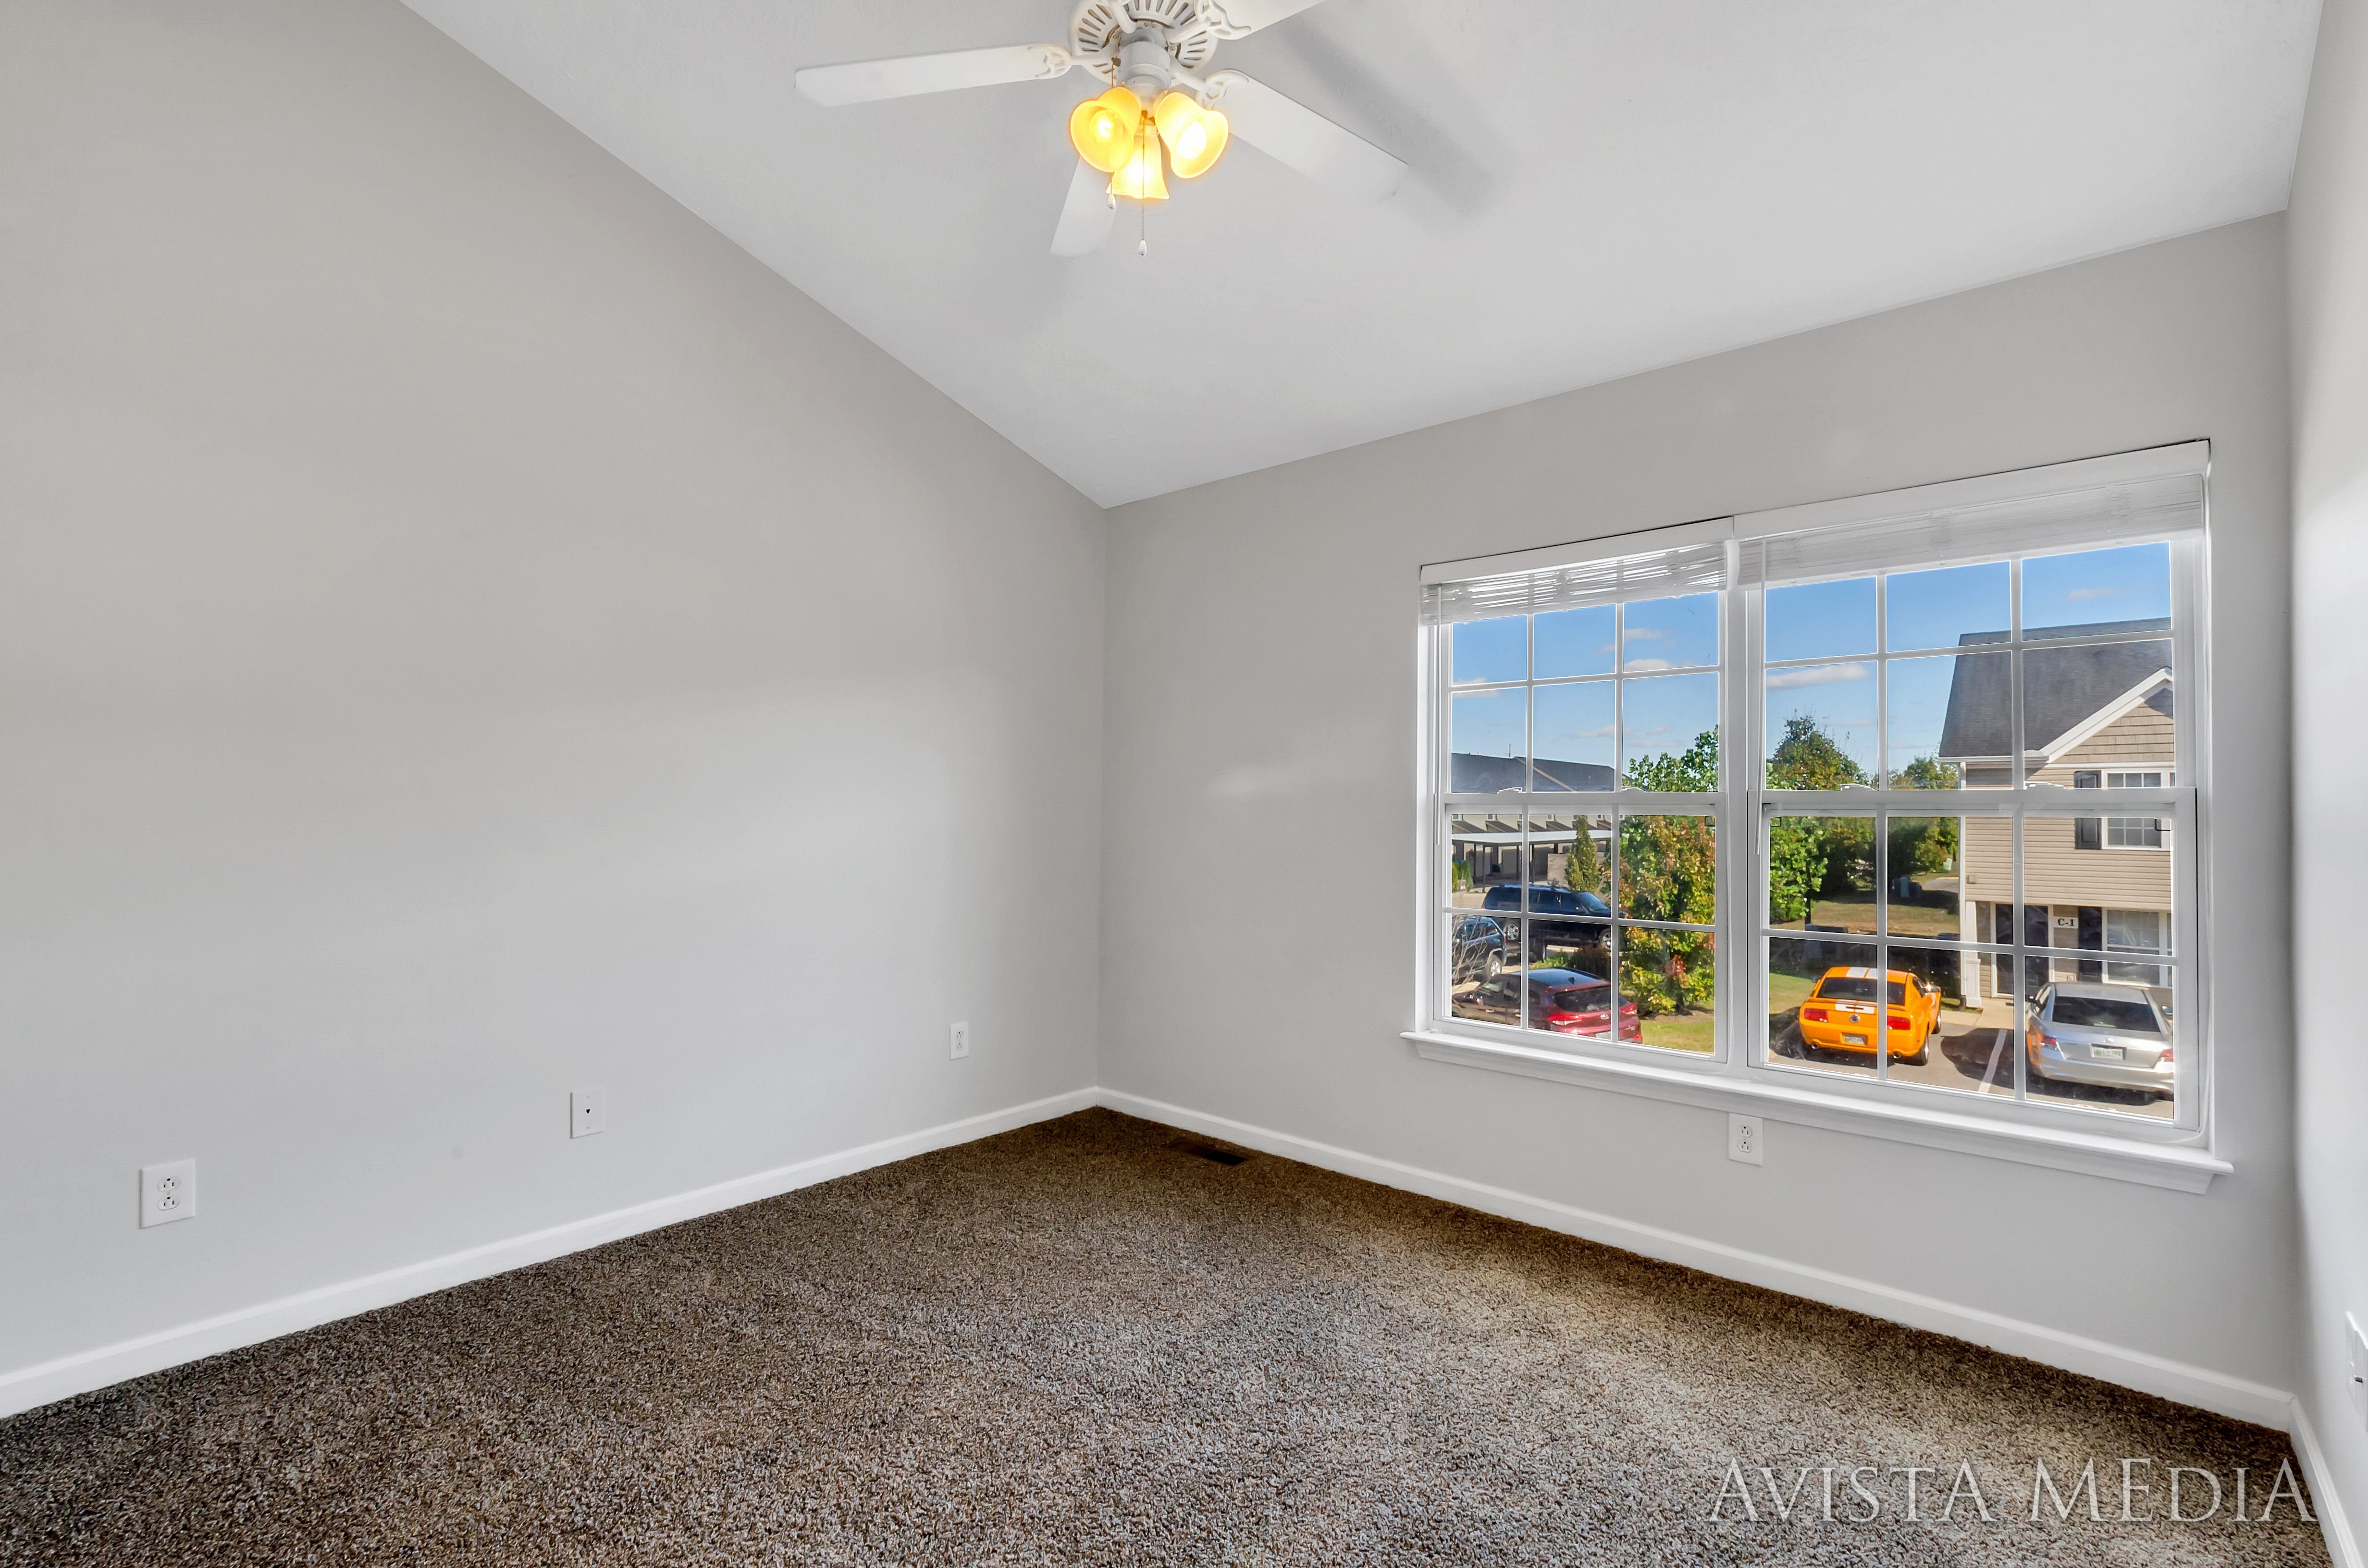 Signature HDR Real Estate Photography by Avista Media - Empty Room